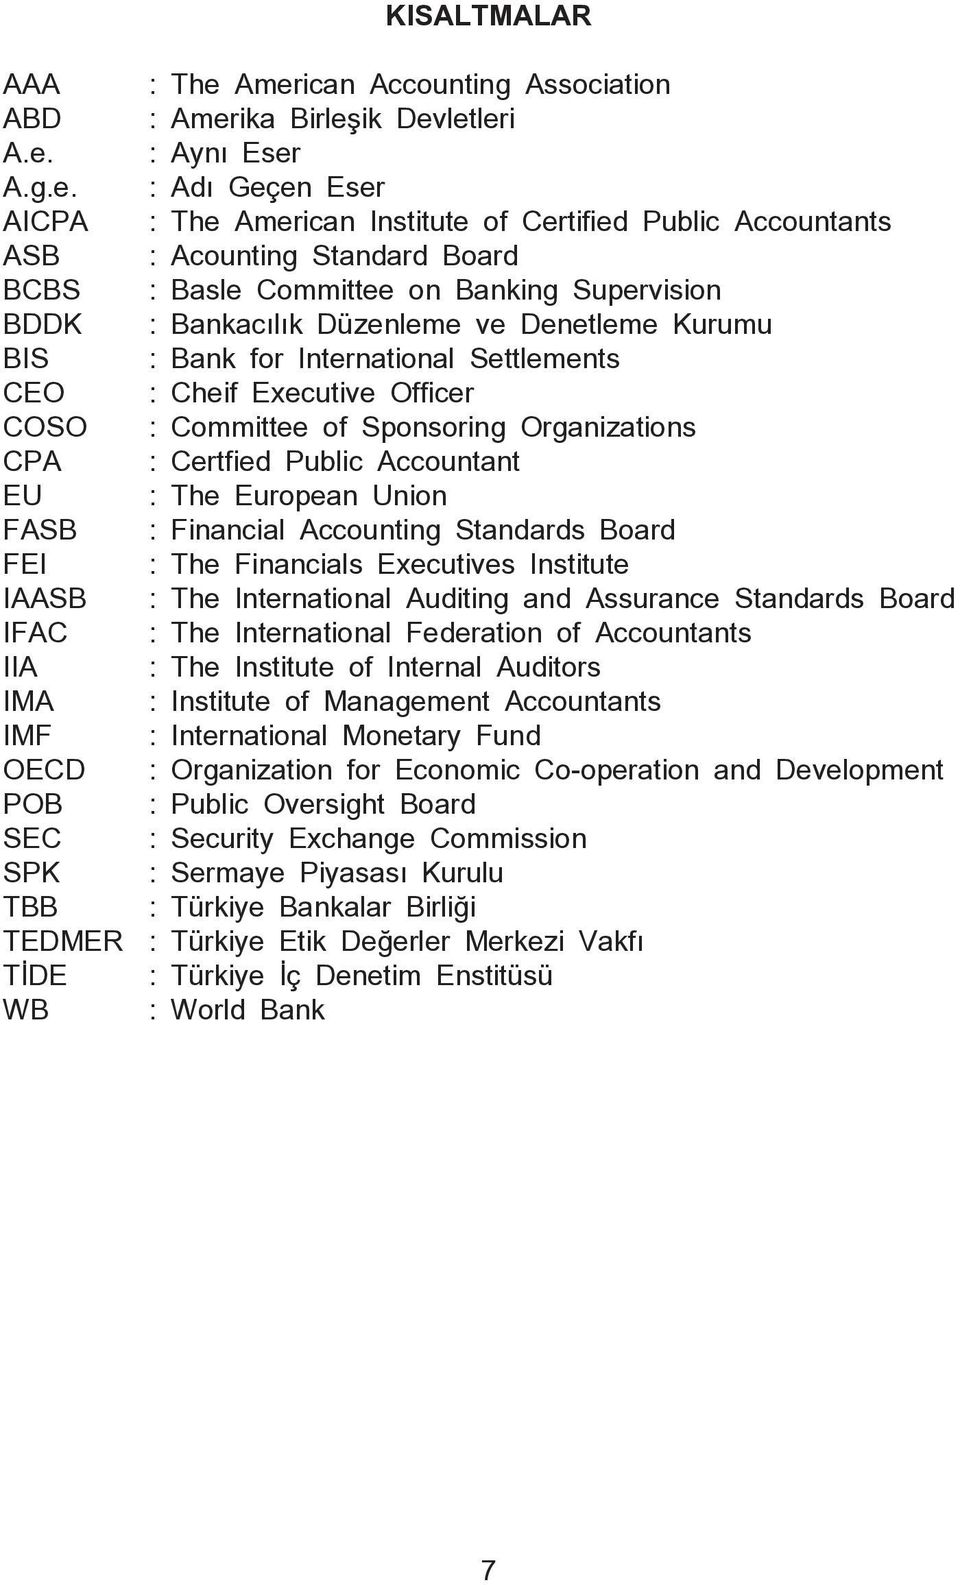 Board BCBS : Basle Committee on Banking Supervision BDDK : Bankacılık Düzenleme ve Denetleme Kurumu BIS : Bank for International Settlements CEO : Cheif Executive Officer COSO : Committee of